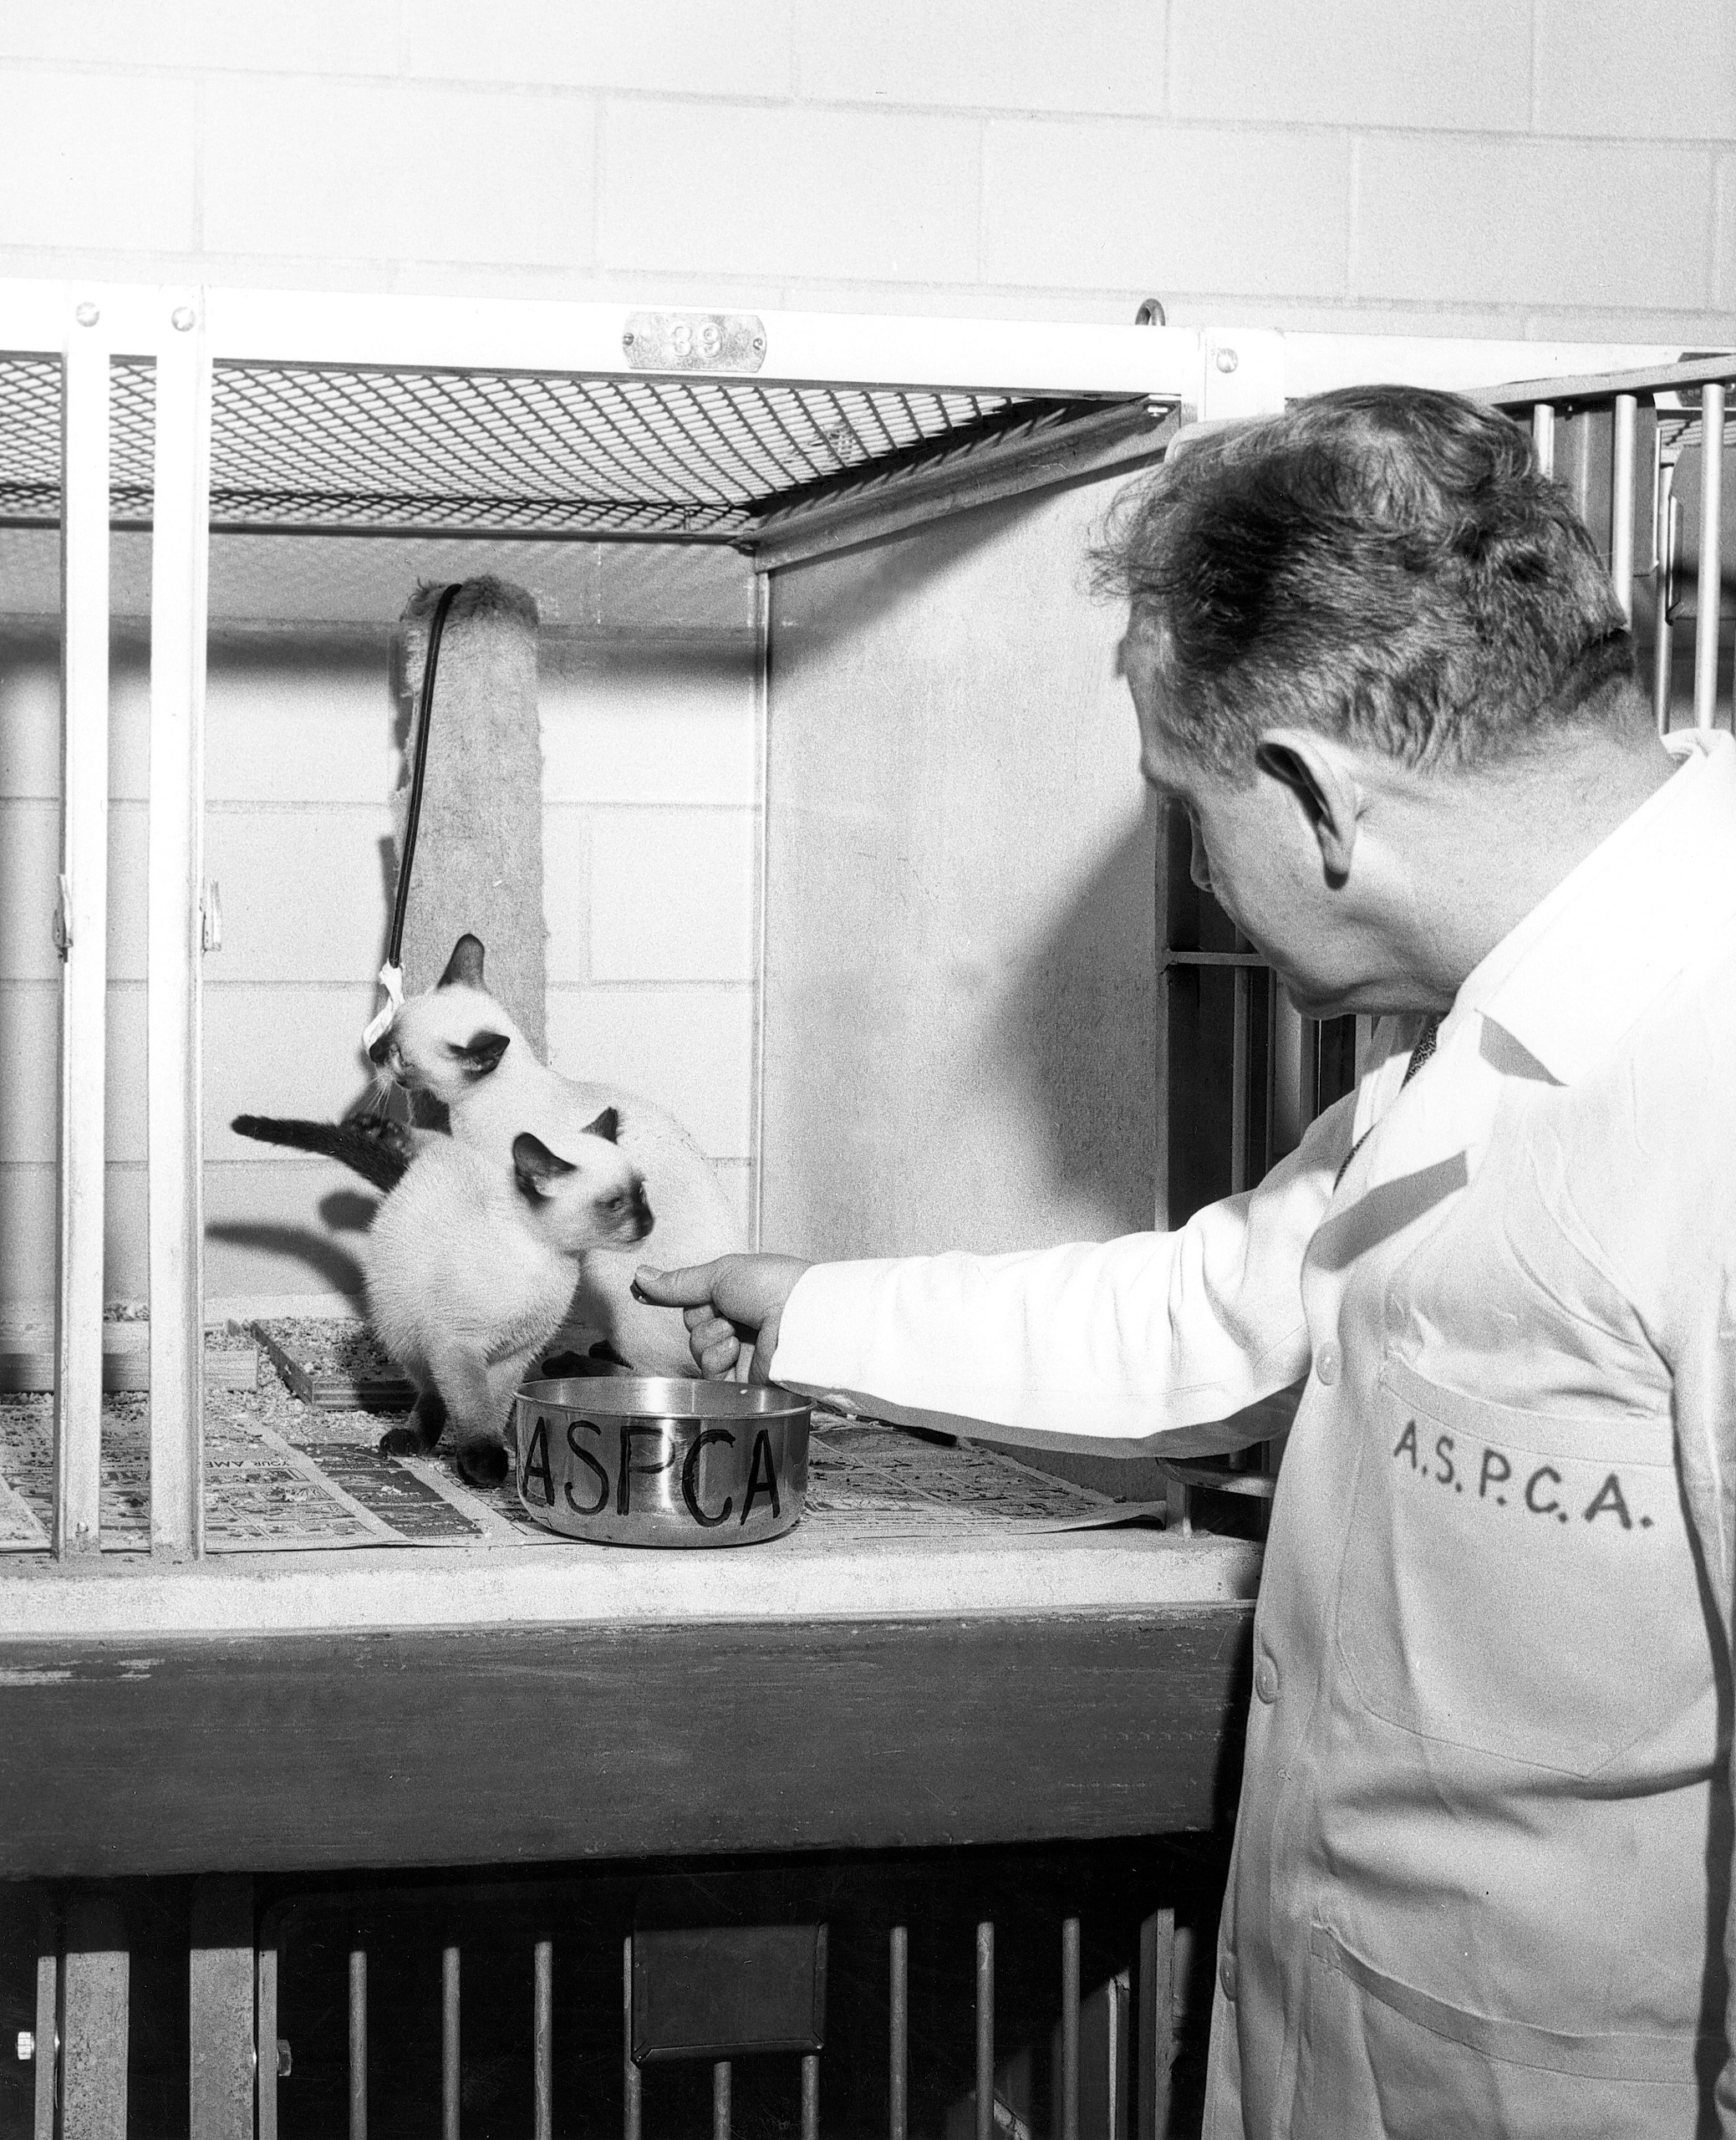 ASPCA shelter attendant caring for adoptable kittens at ASPCA Animal Hospital in NYC, 1950s.